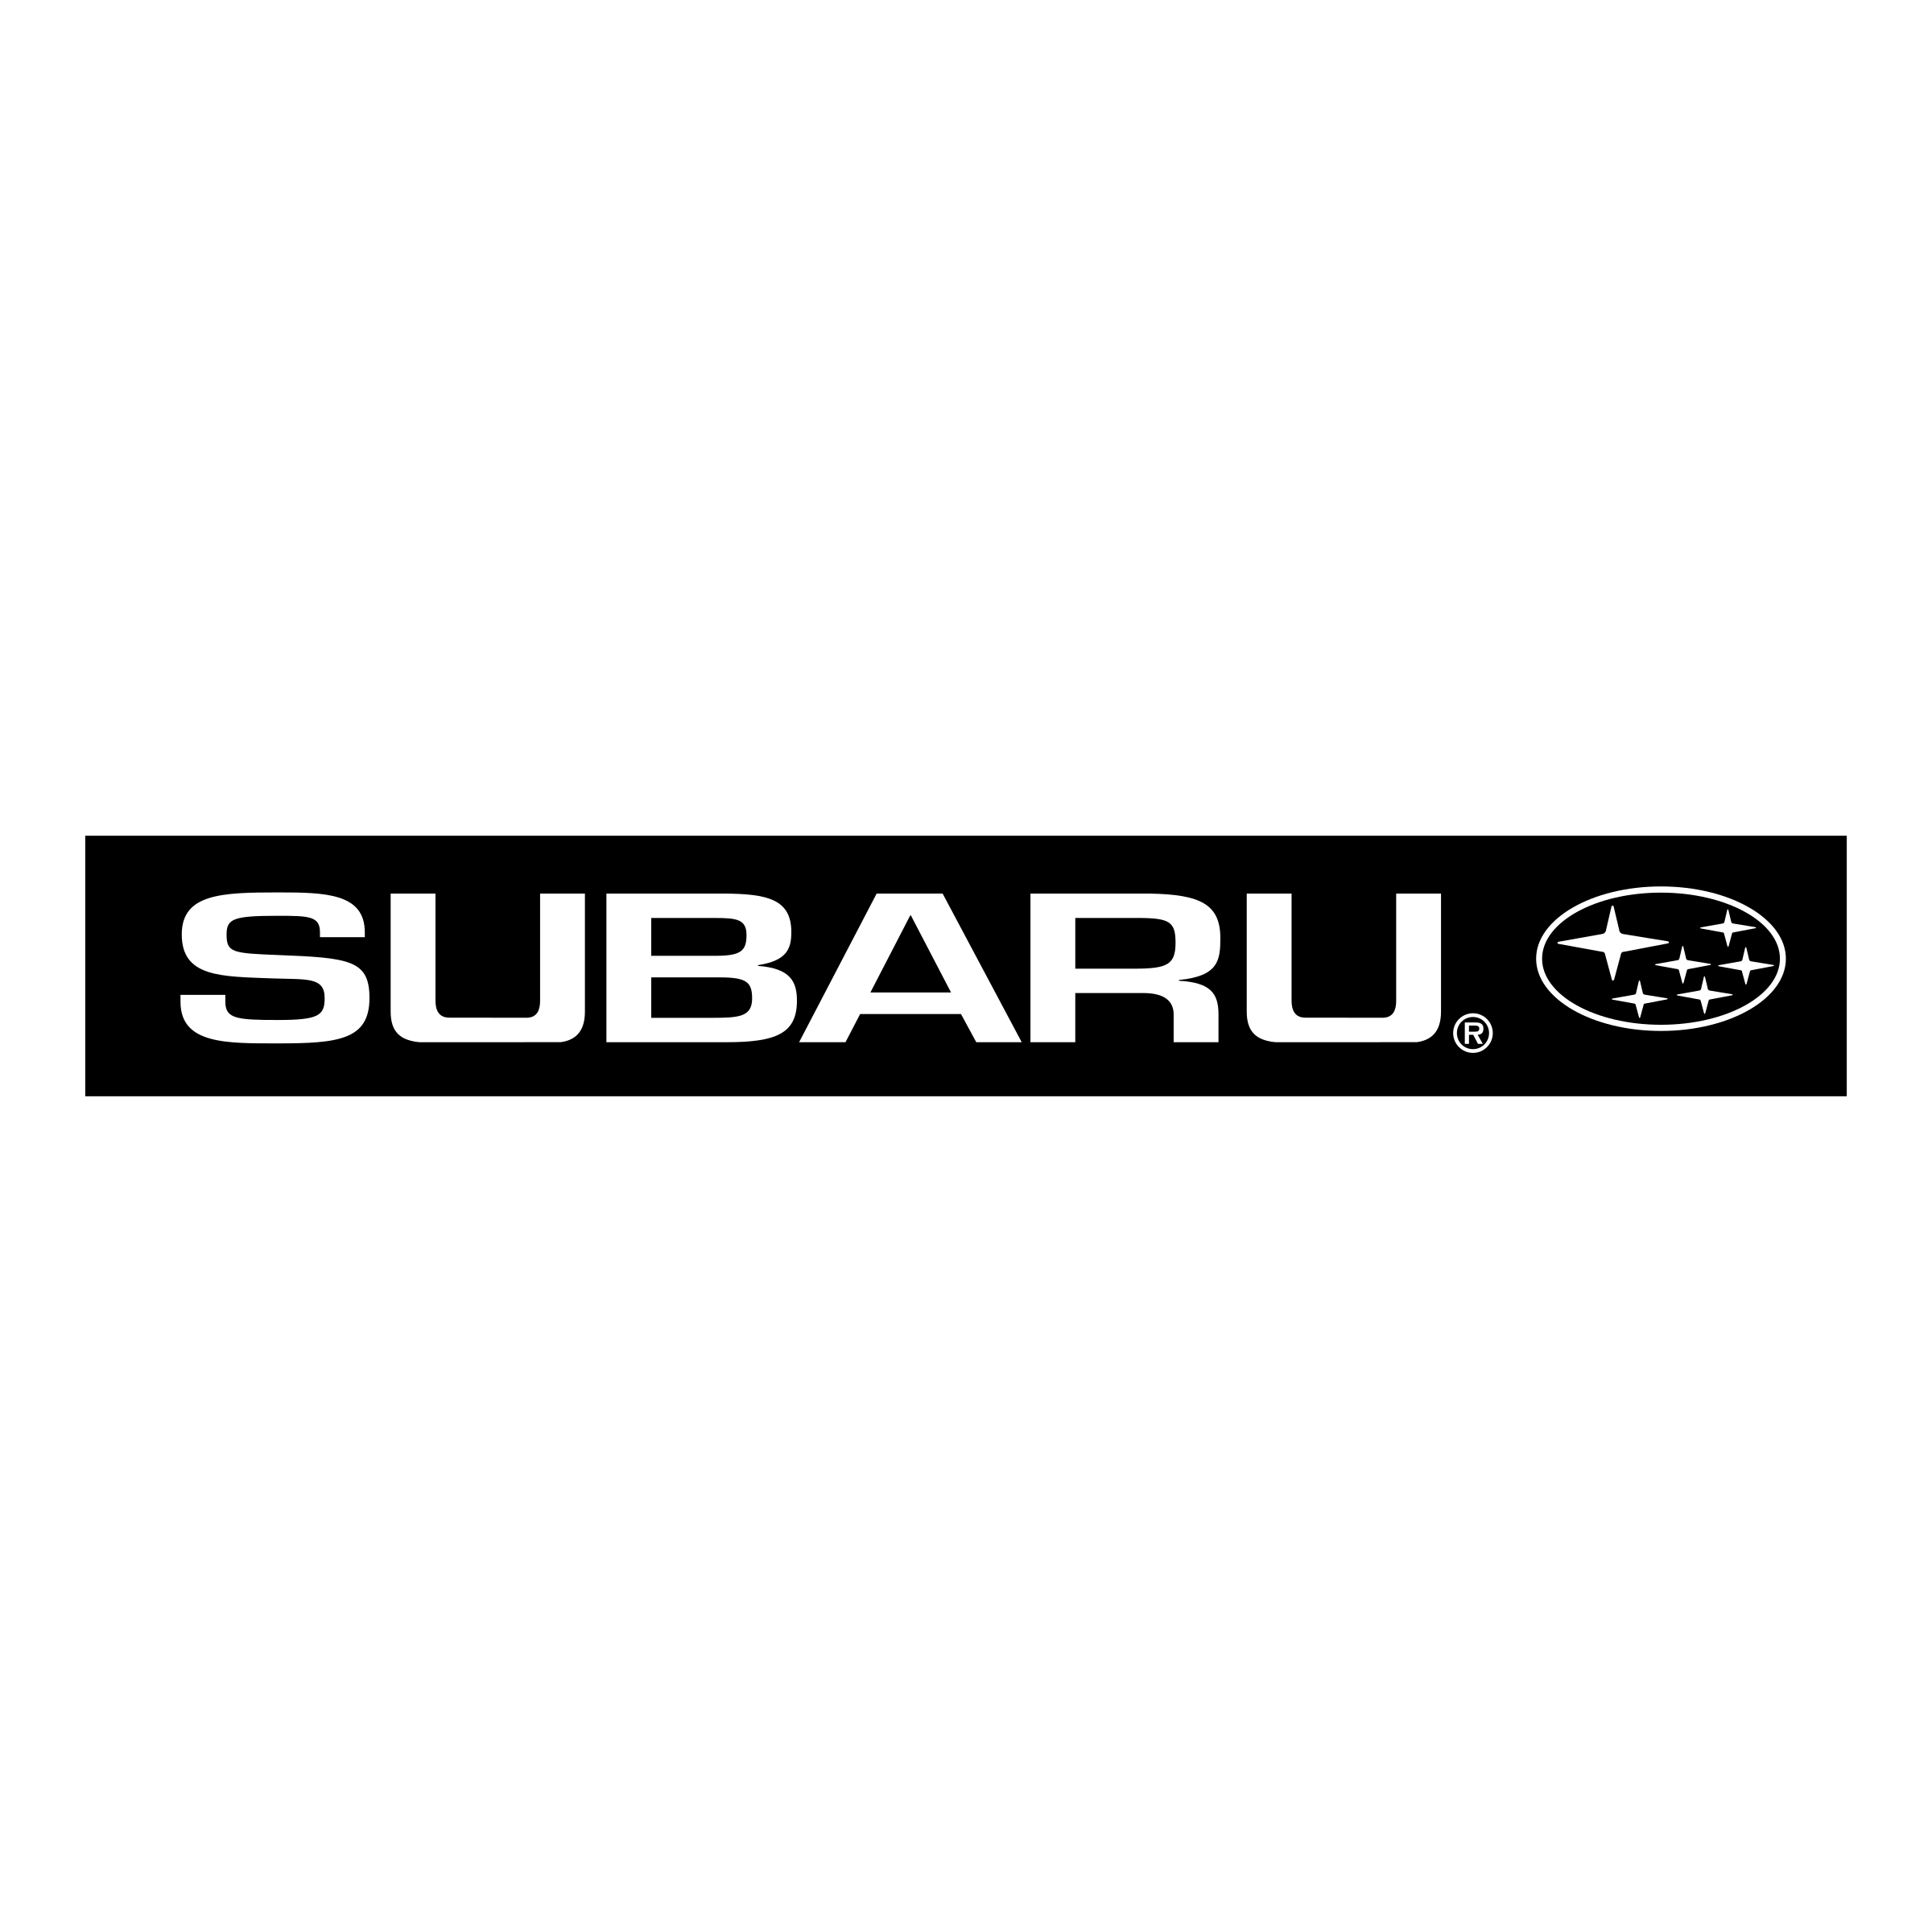 Subaru Logo PNG Transparent & SVG Vector.